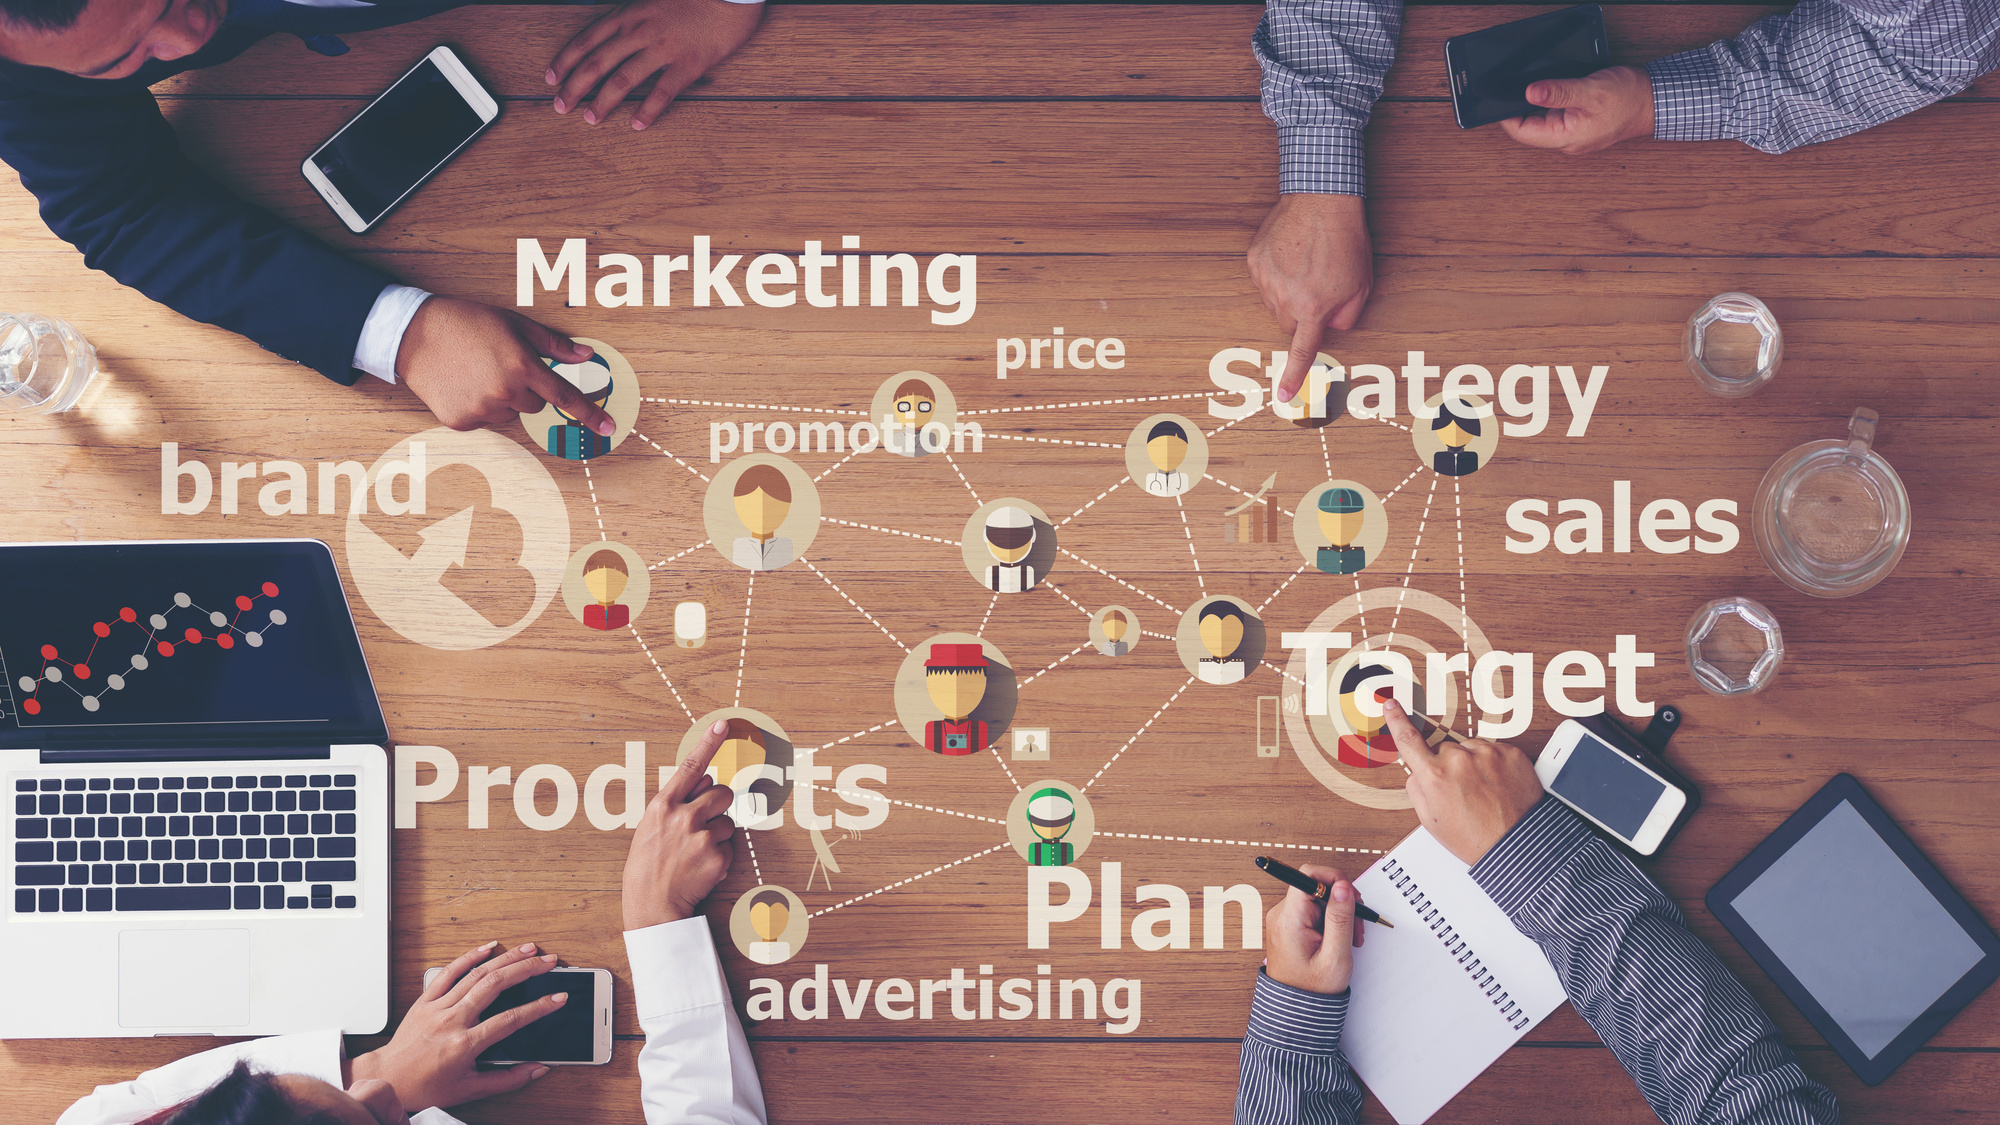 Marketing Strategy Visualized